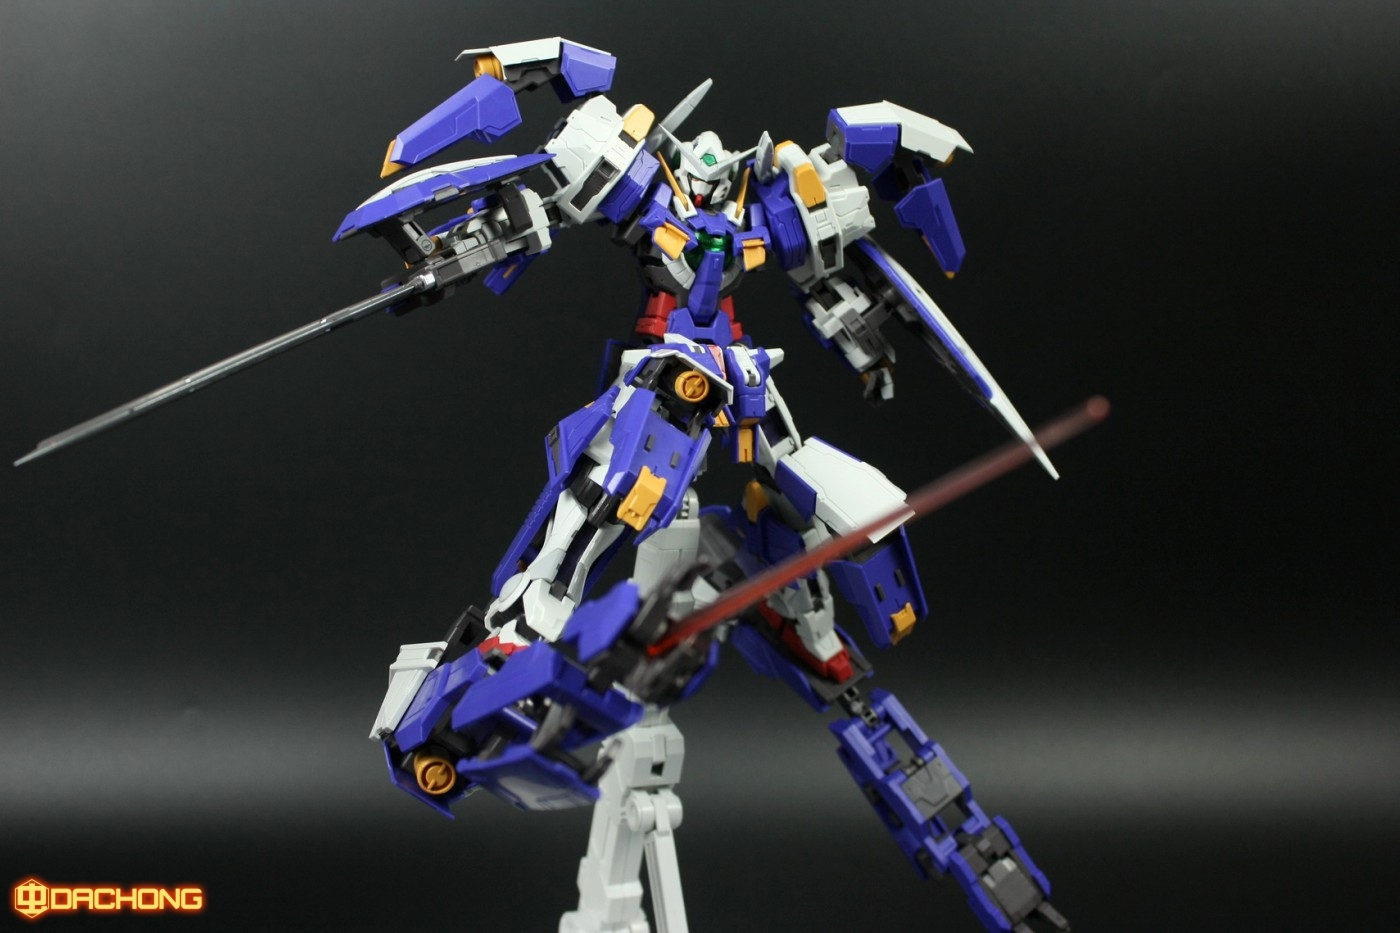 S254_MG_exia_HS_review_inask_092.jpg